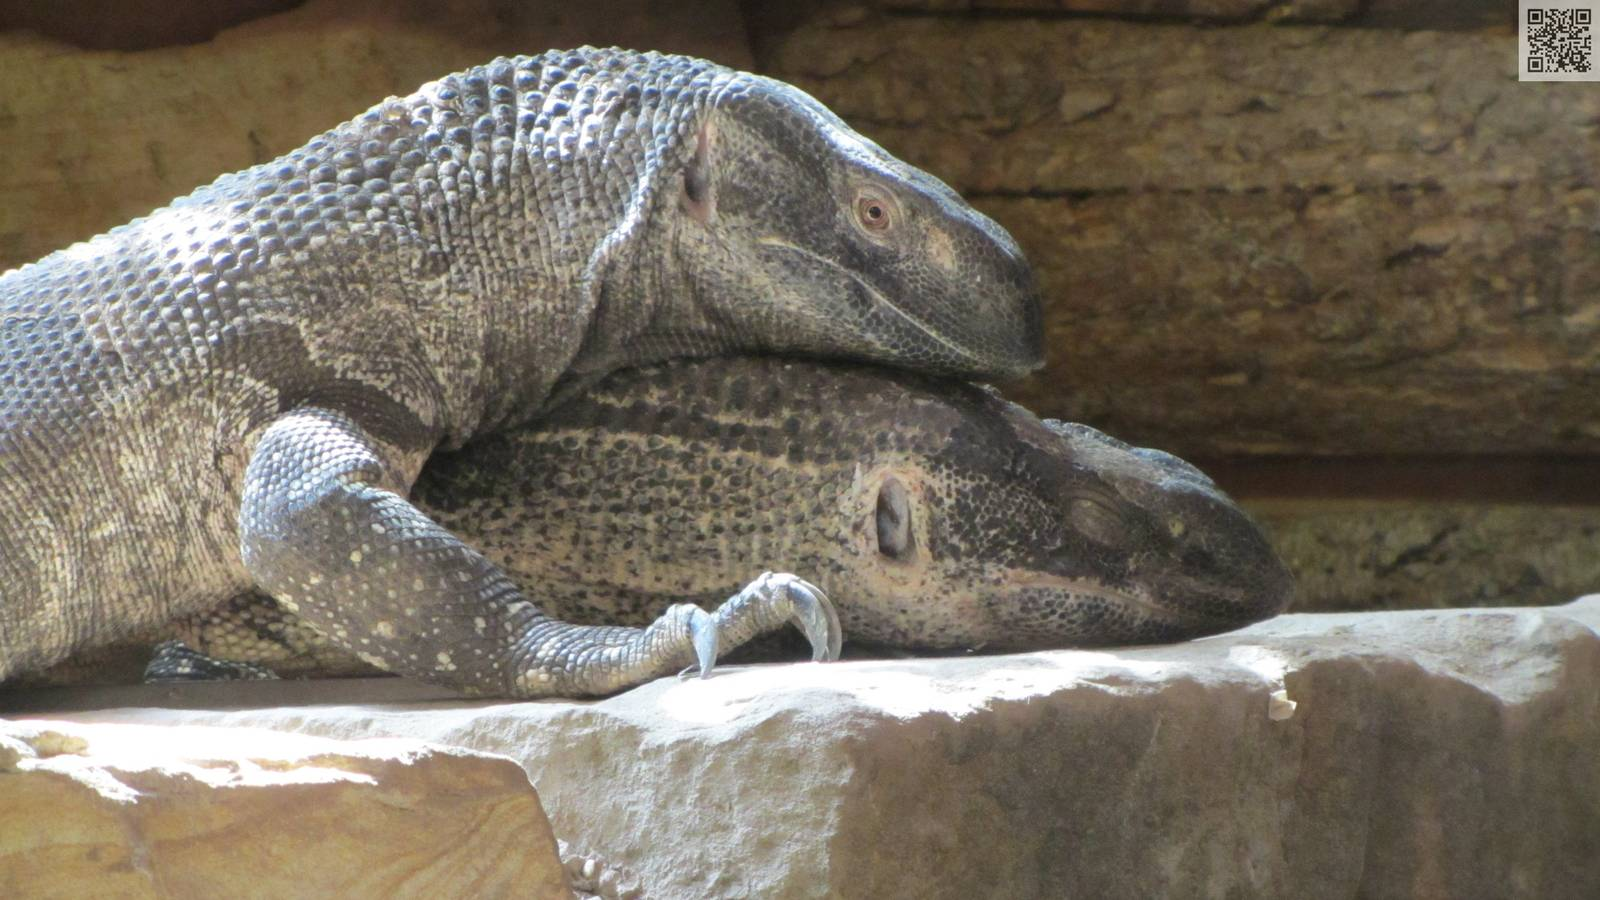 White-throated Monitor Lizard Pair in Love - ZooChat